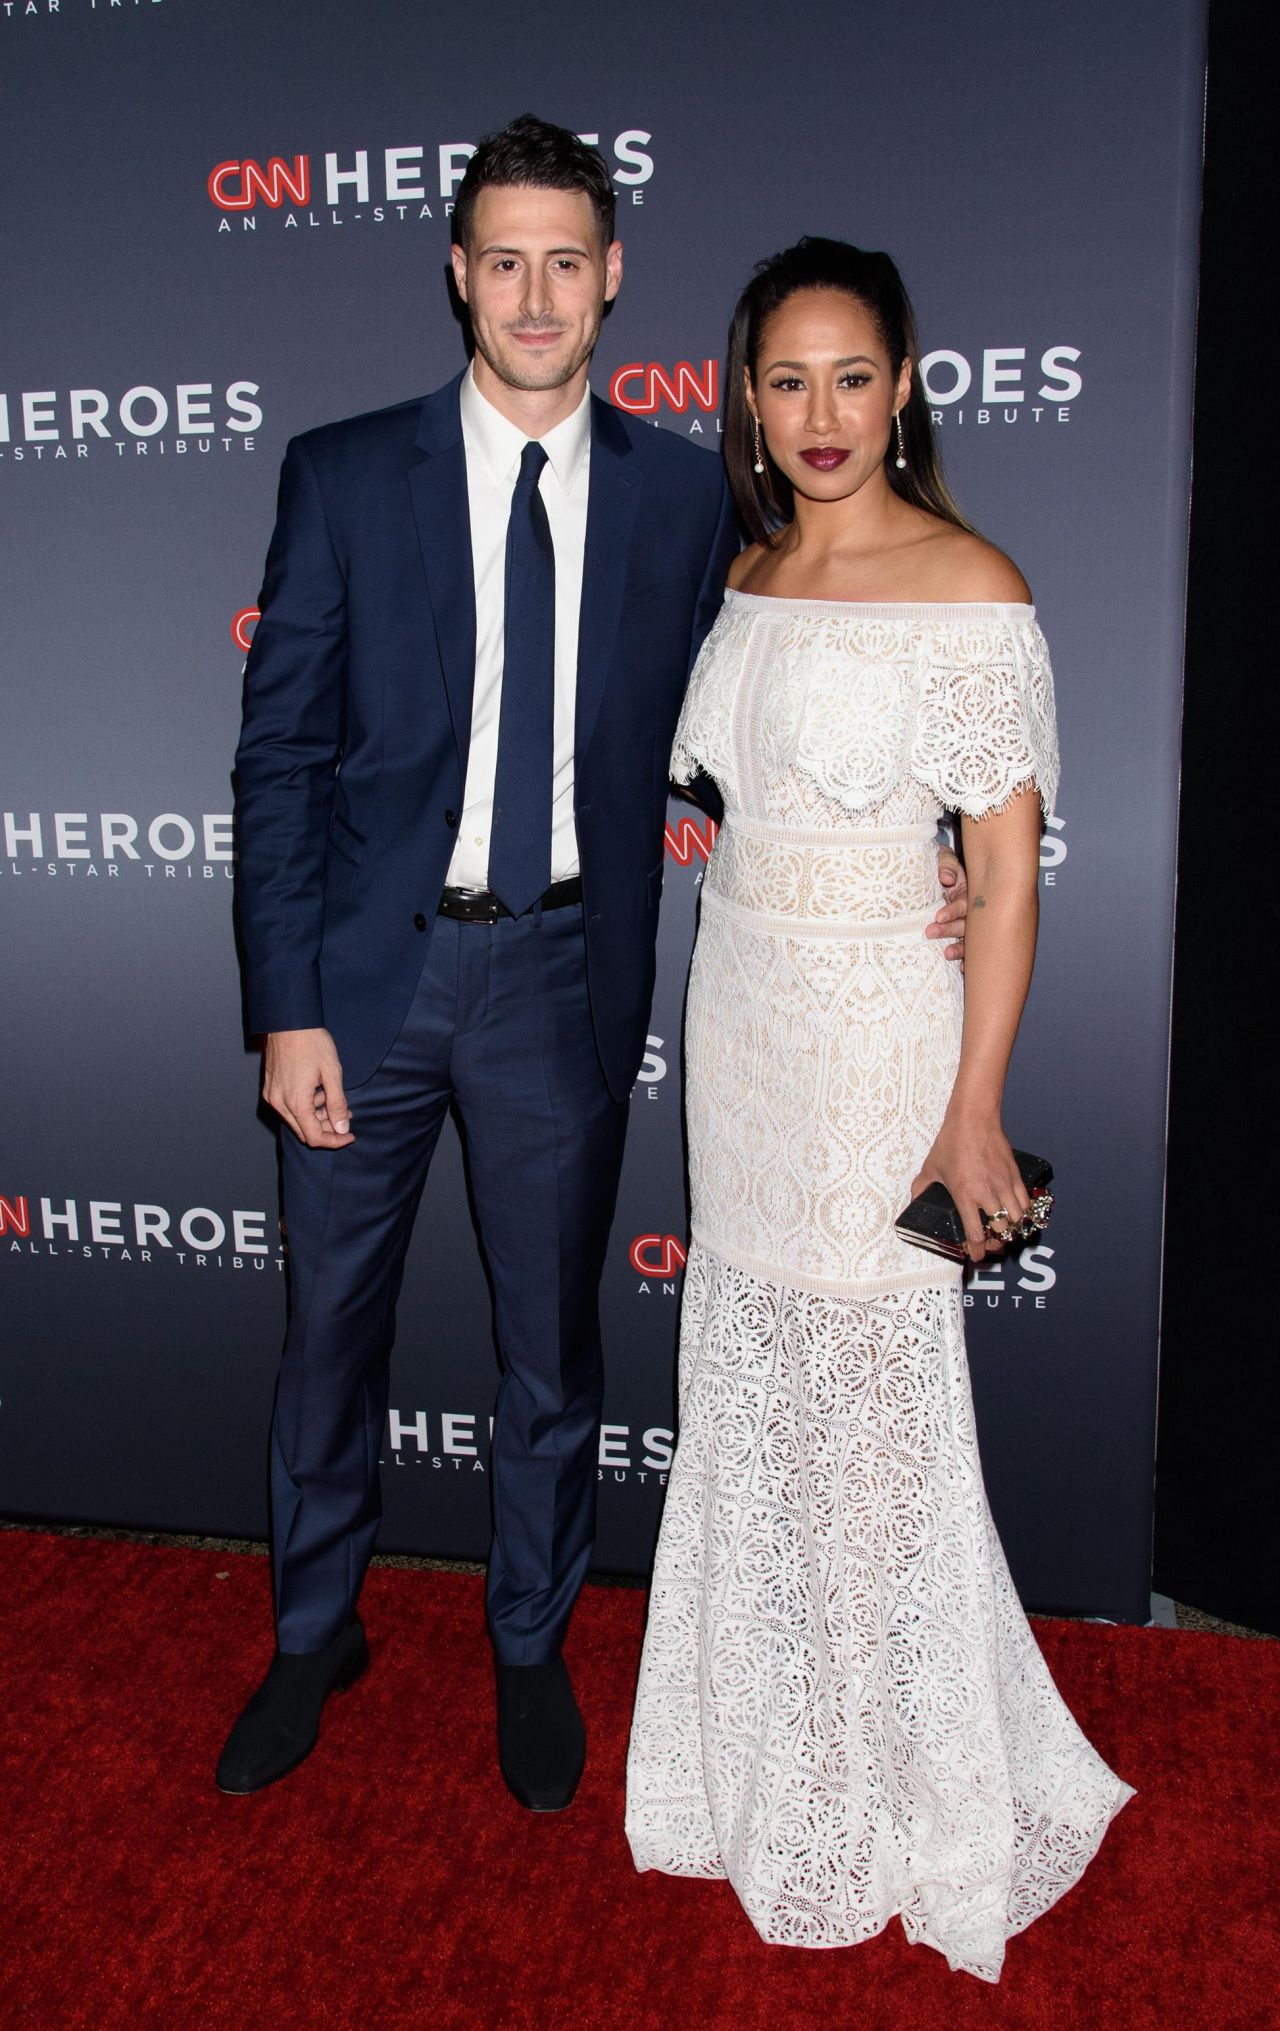 Forum on this topic: Andrew Younghusband, margot-bingham/